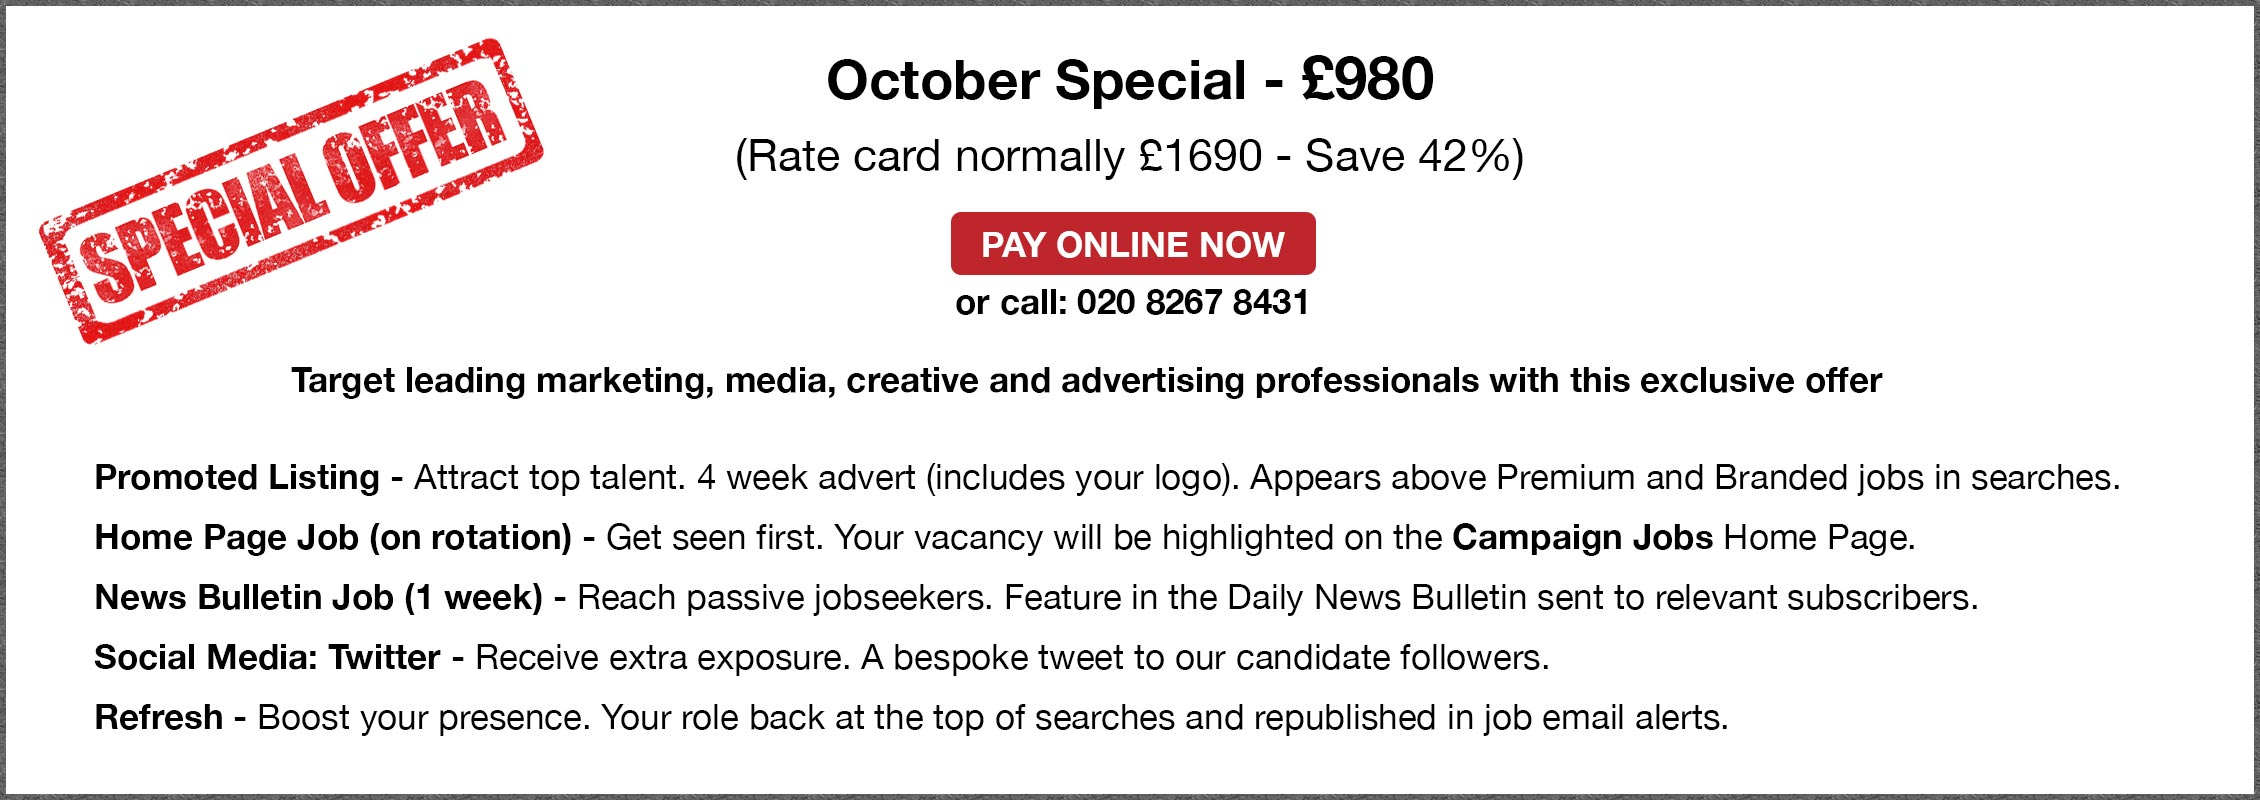 Special Offer. October Special - £980. (Rate card normally £1690 - Save 42%). PAY ONLINE NOW or call: 020 8267 8431. Target leading marketing, media, creative and advertising professionals with this exclusive offer. Promoted Listing - Attract top talent. 4 week advert (includes your logo). Appears above Premium and Branded jobs in searches. Home Page Job (on rotation) - Get seen first. Your vacancy will be highlighted on the Campaign Jobs Home Page. Editorial & Bulletin Job (1 week) - Reach passive jobseekers. Feature in the Daily News Bulletin sent to relevant subscribers. Social Media: Twitter - Receive extra exposure. A bespoke tweet to our candidate followers.